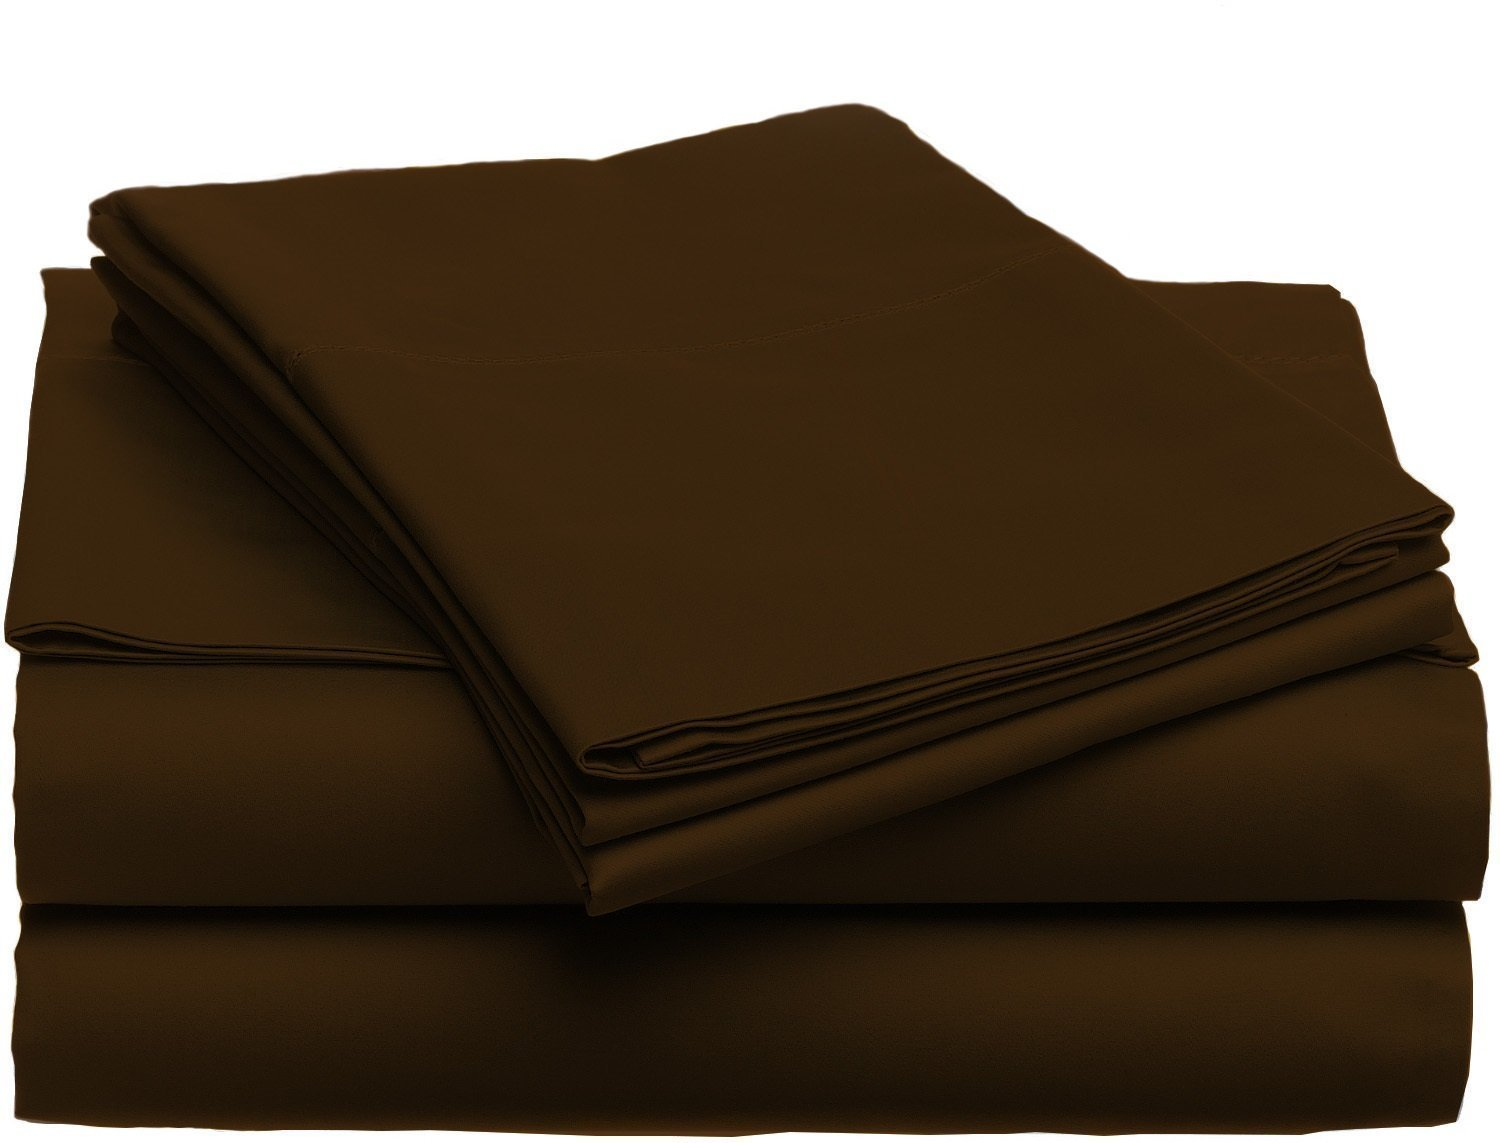 Luxury-Home-Super-Soft-1600-Series-Double-Brushed-6-Pcs-Bed-Sheets-Set thumbnail 11